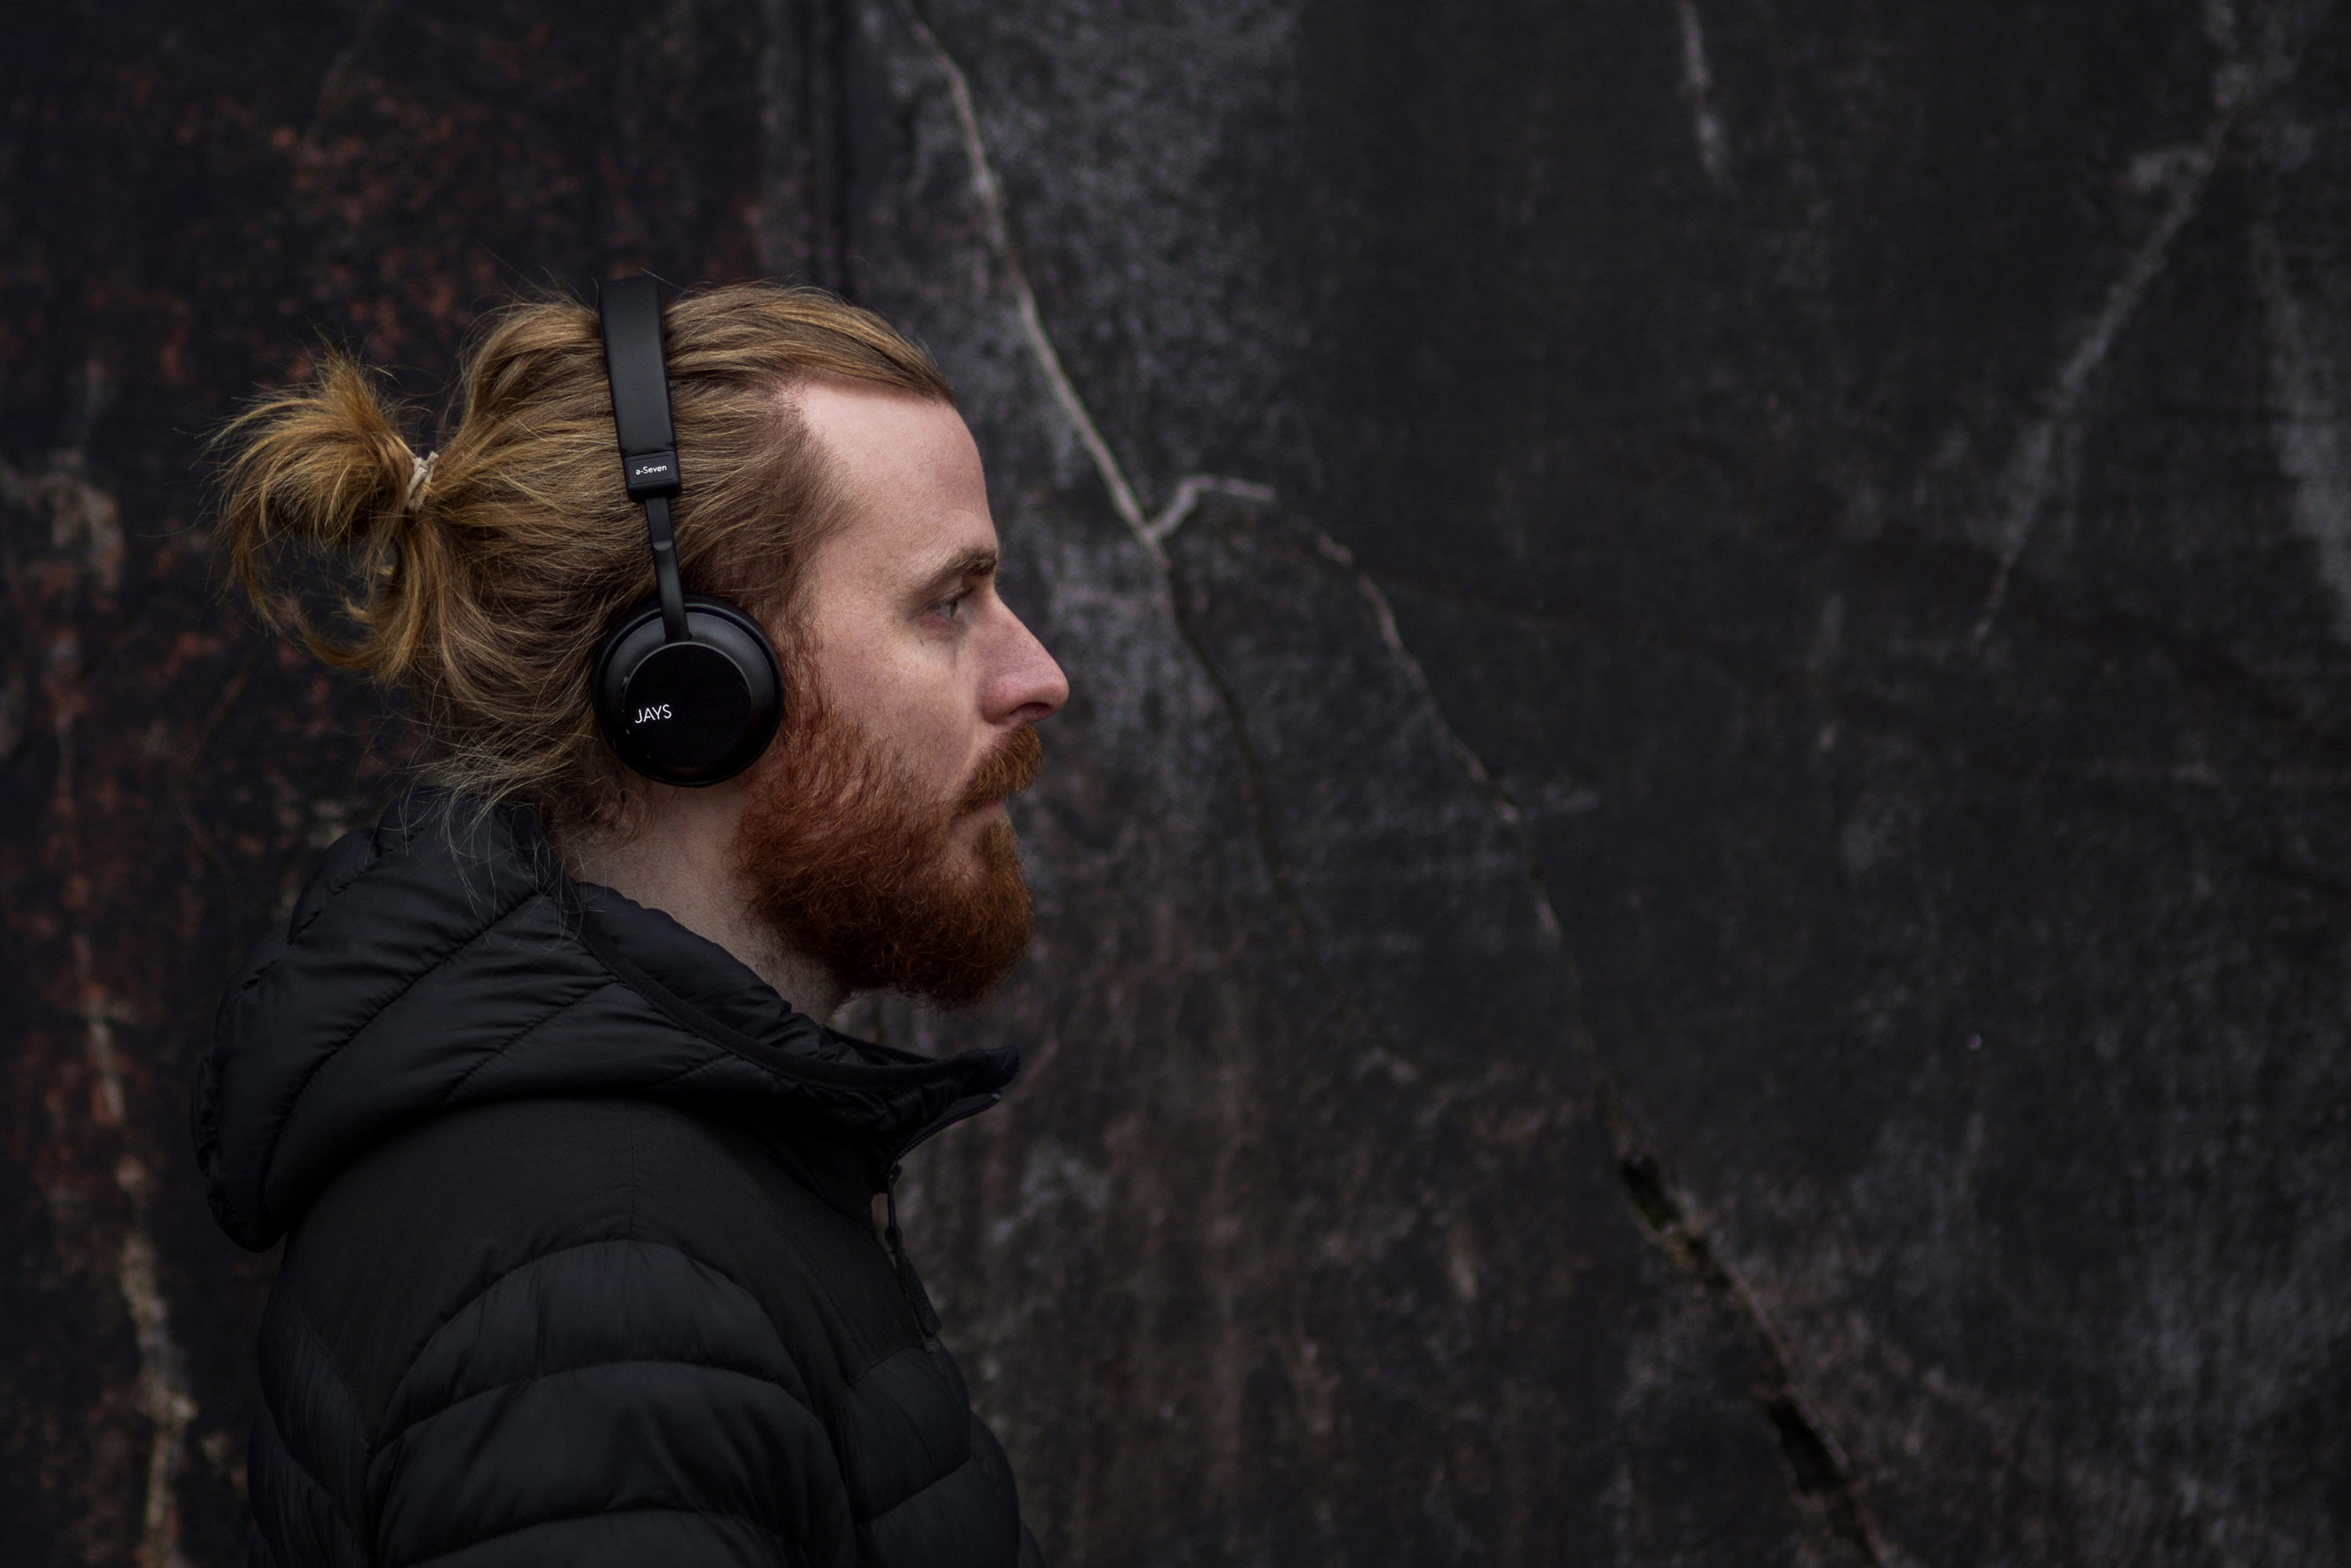 JAYS a-Seven Wireless Headphones Lifestyle worn by male model